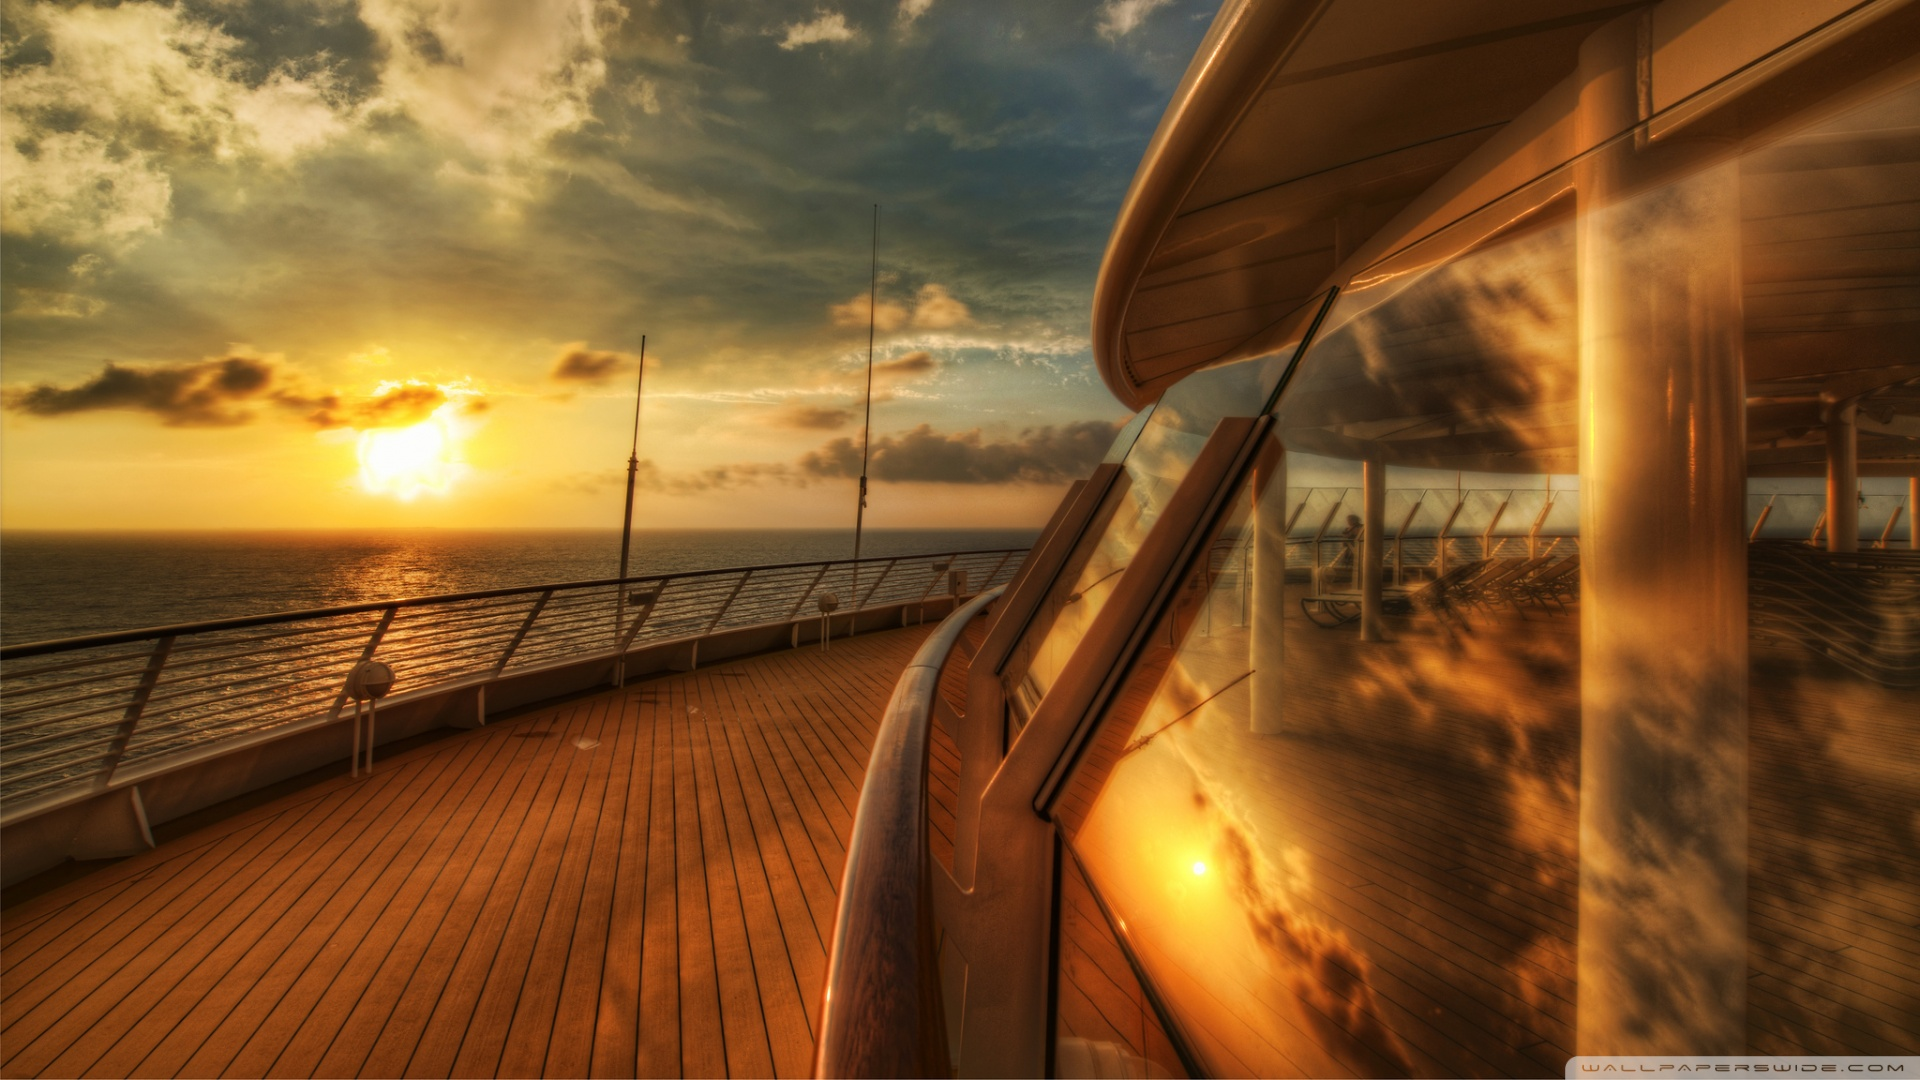 Cruise Ship Deck Sunset Wallpaper 1920x1080 Cruise Ship Deck Sunset 1920x1080